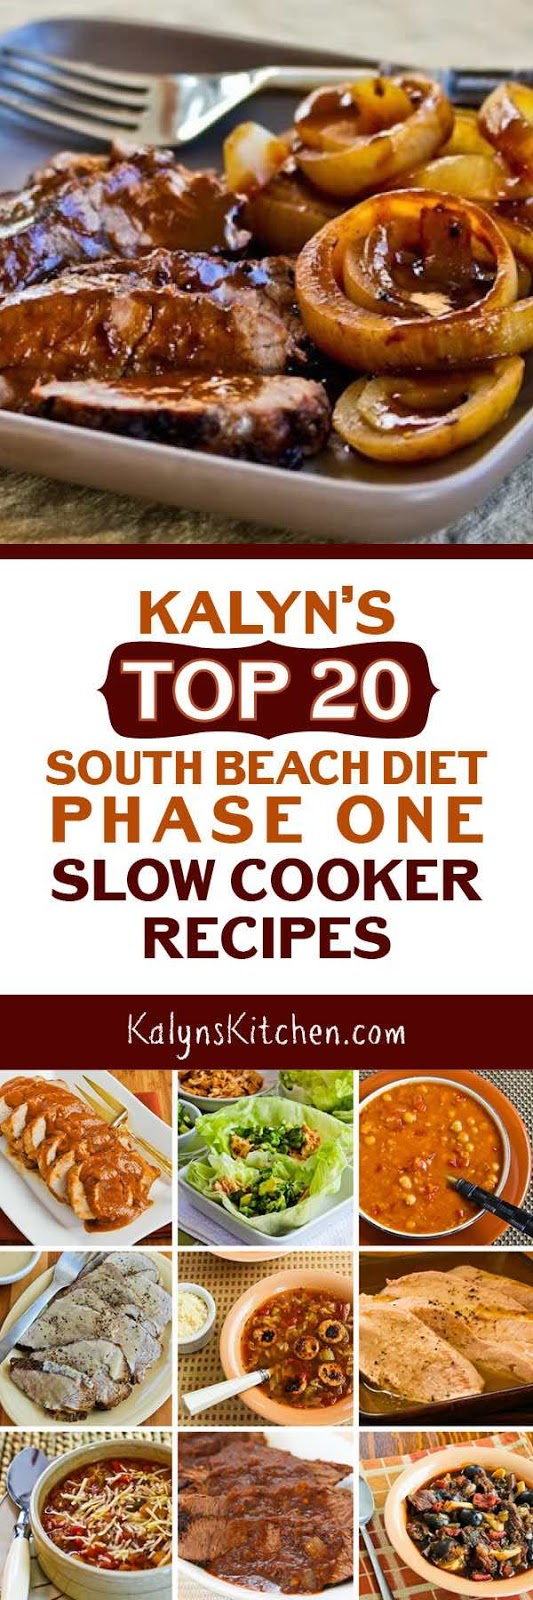 For everyone who's starting the year with more carb-conscious eating, here are ,y Top 20 South Beach Diet Phase One Slow Cooker